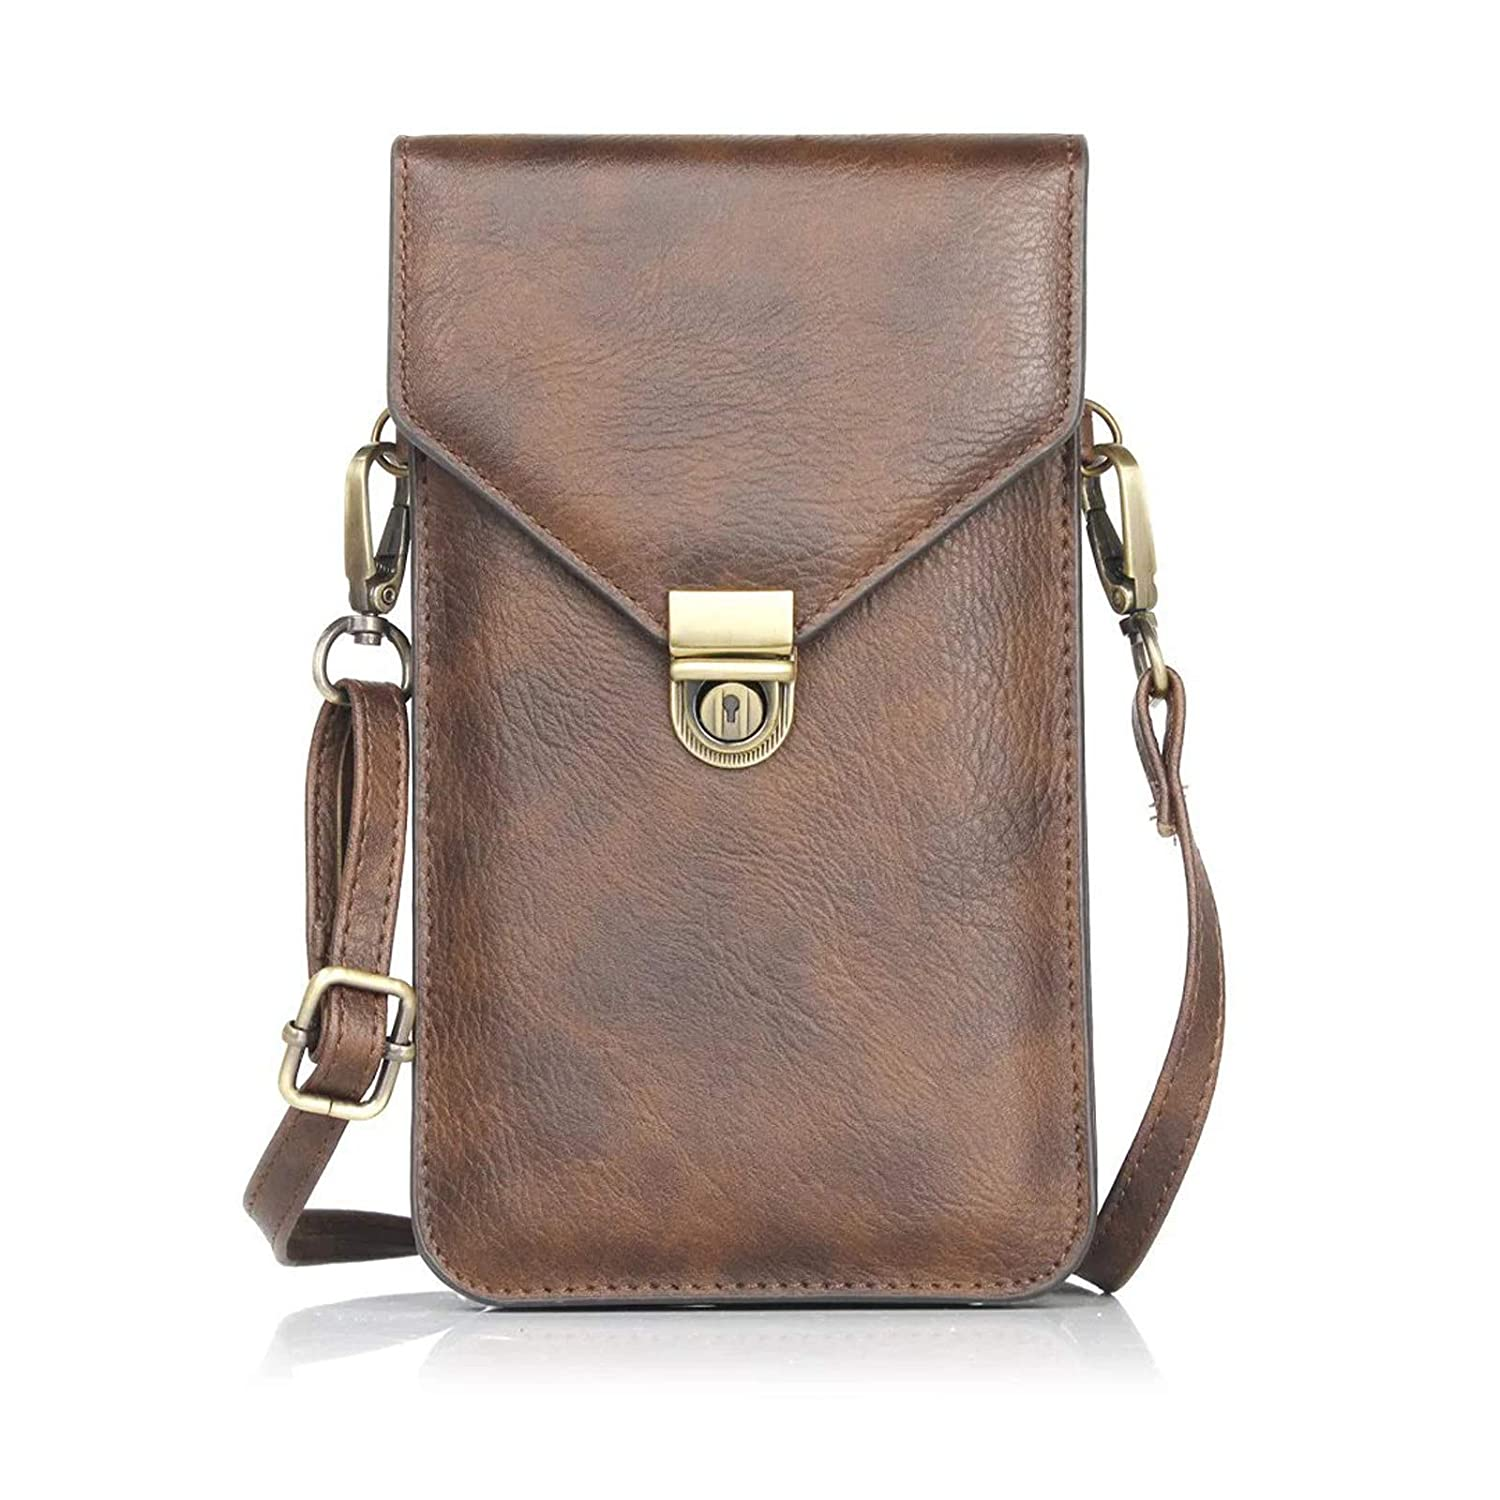 53ec24d34b6d Universal Crossbody Cell Phone Bag for Woman, Dteck Leather Cell Phone  Pouch Purse Wallet with Shoulder Strap for iPhone X / 8 Plus, Samsung Note  8 / ...